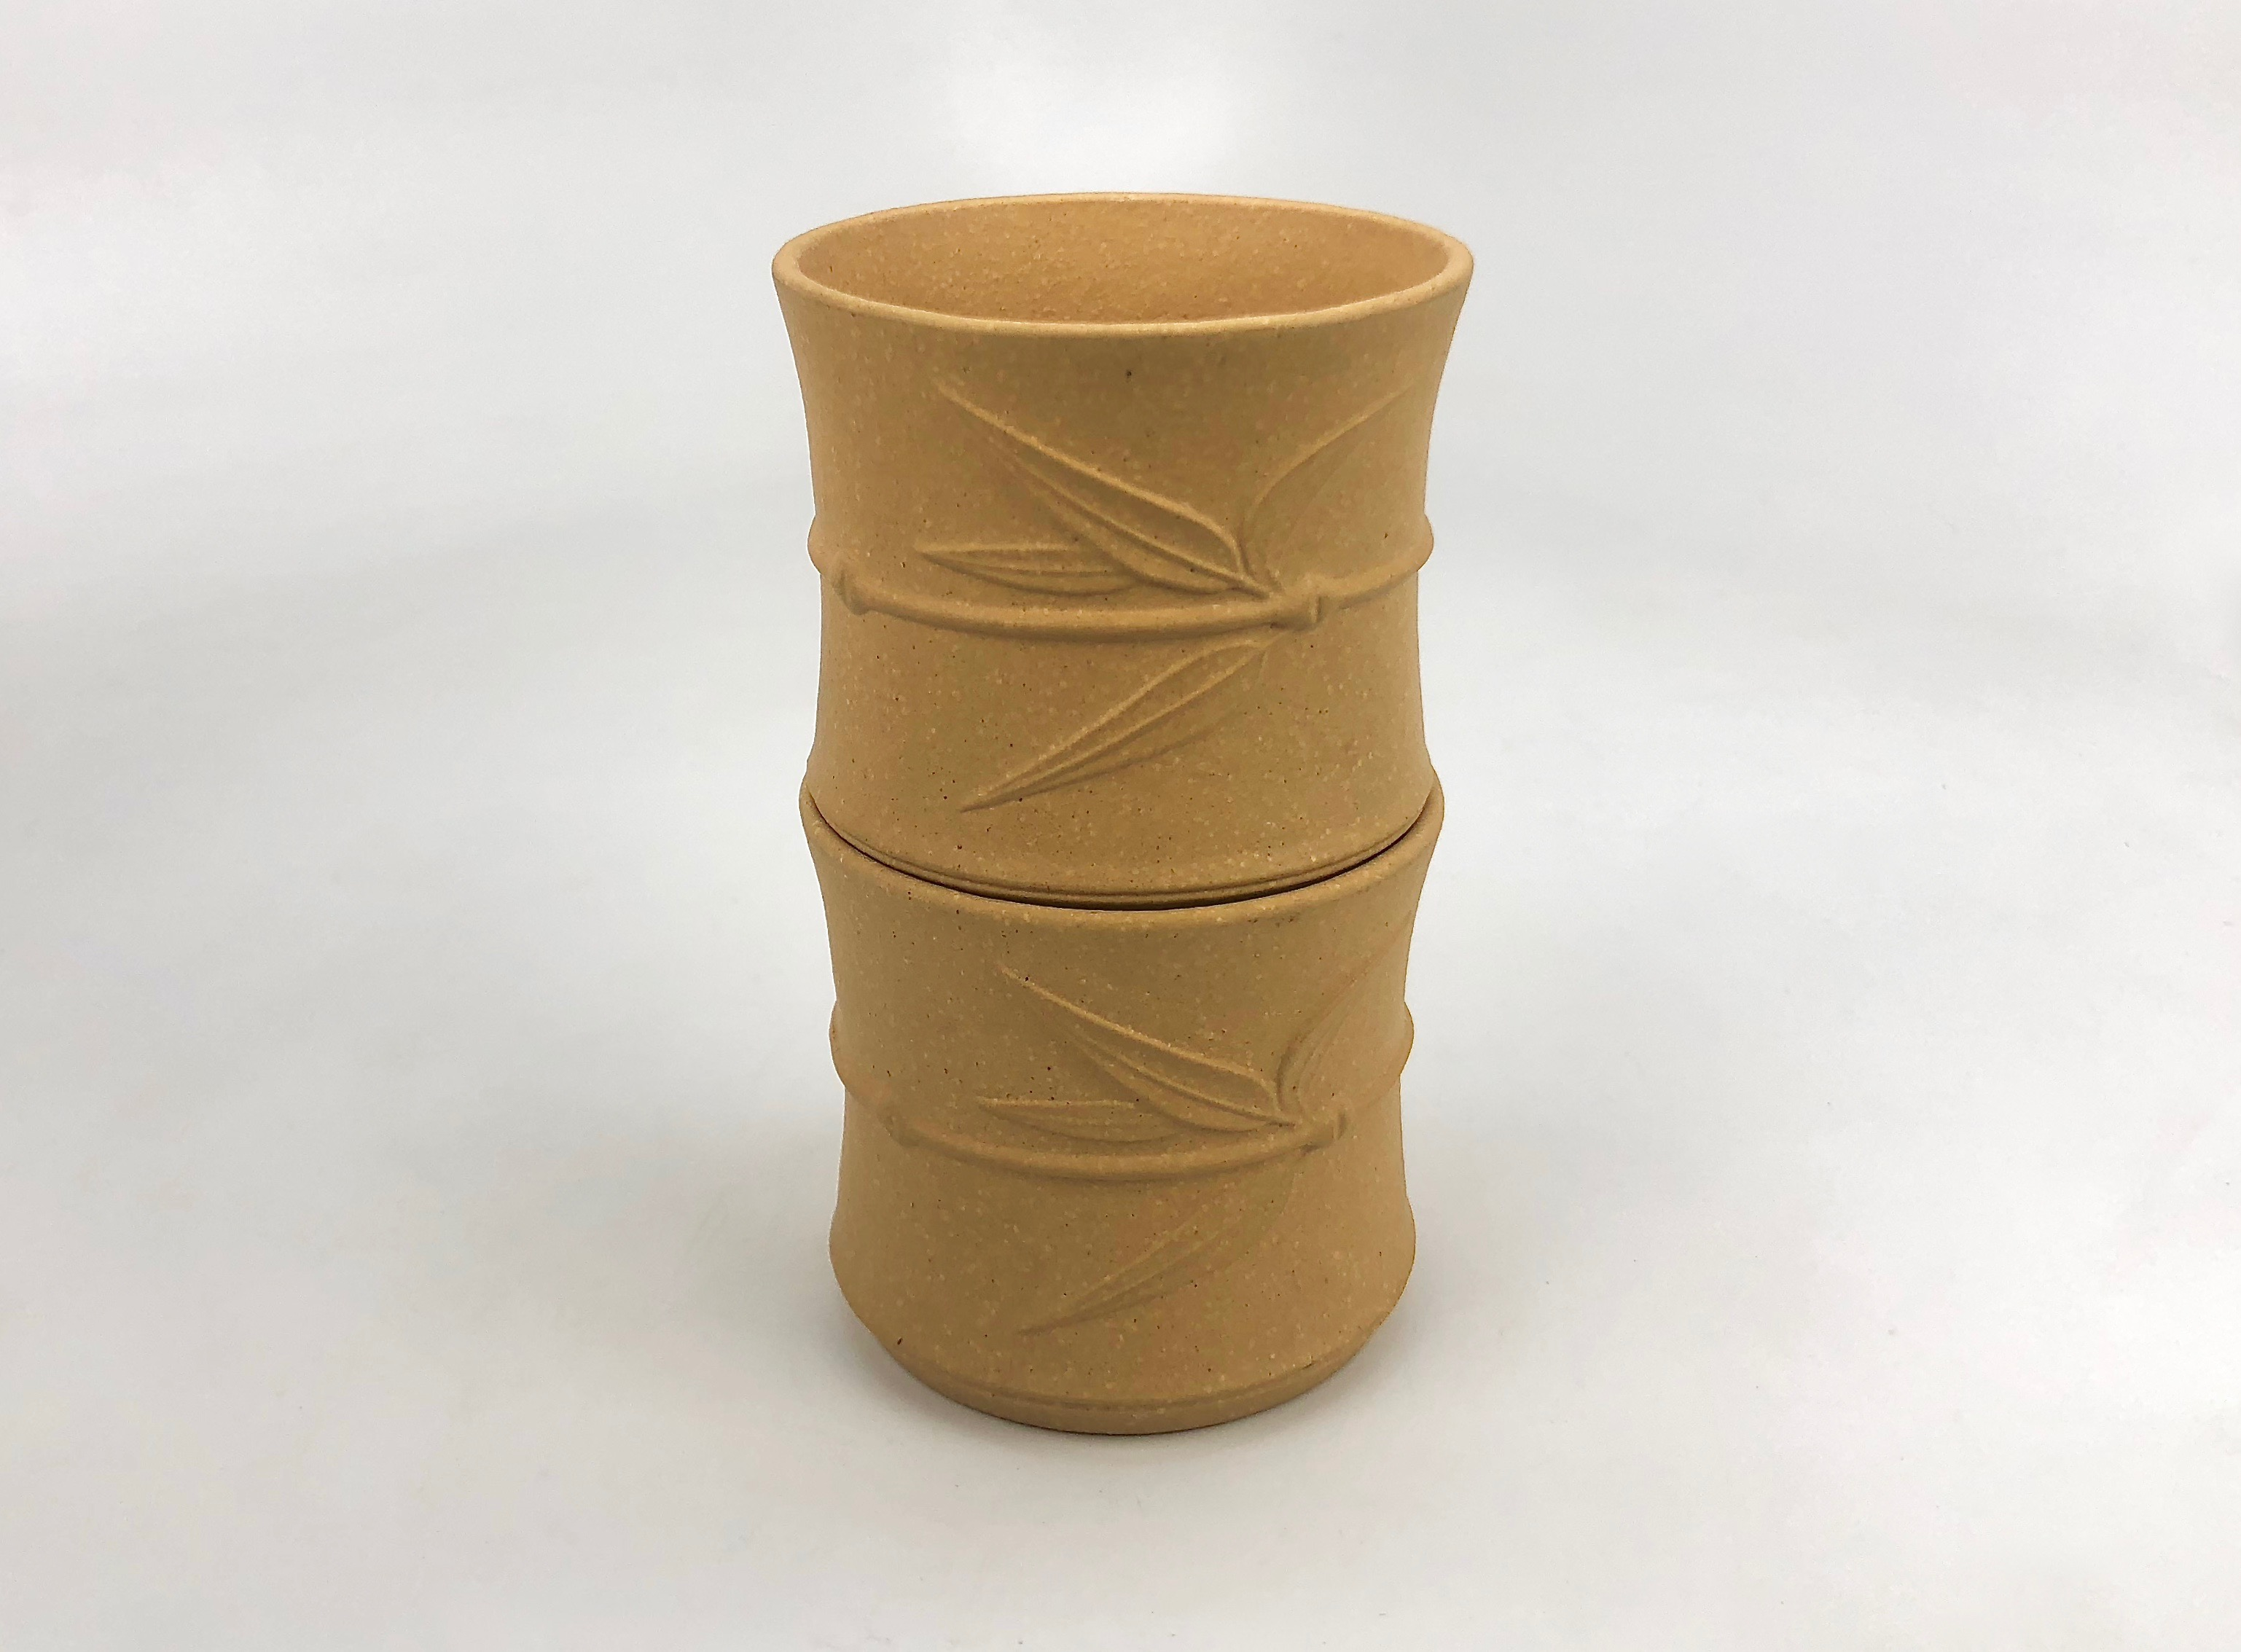 Two bamboo leaf yellow yixing clay cups stacked one on top of the other. The bamboo segment shape of each cup makes the stack appear to resemble a growing bamboo stalk.